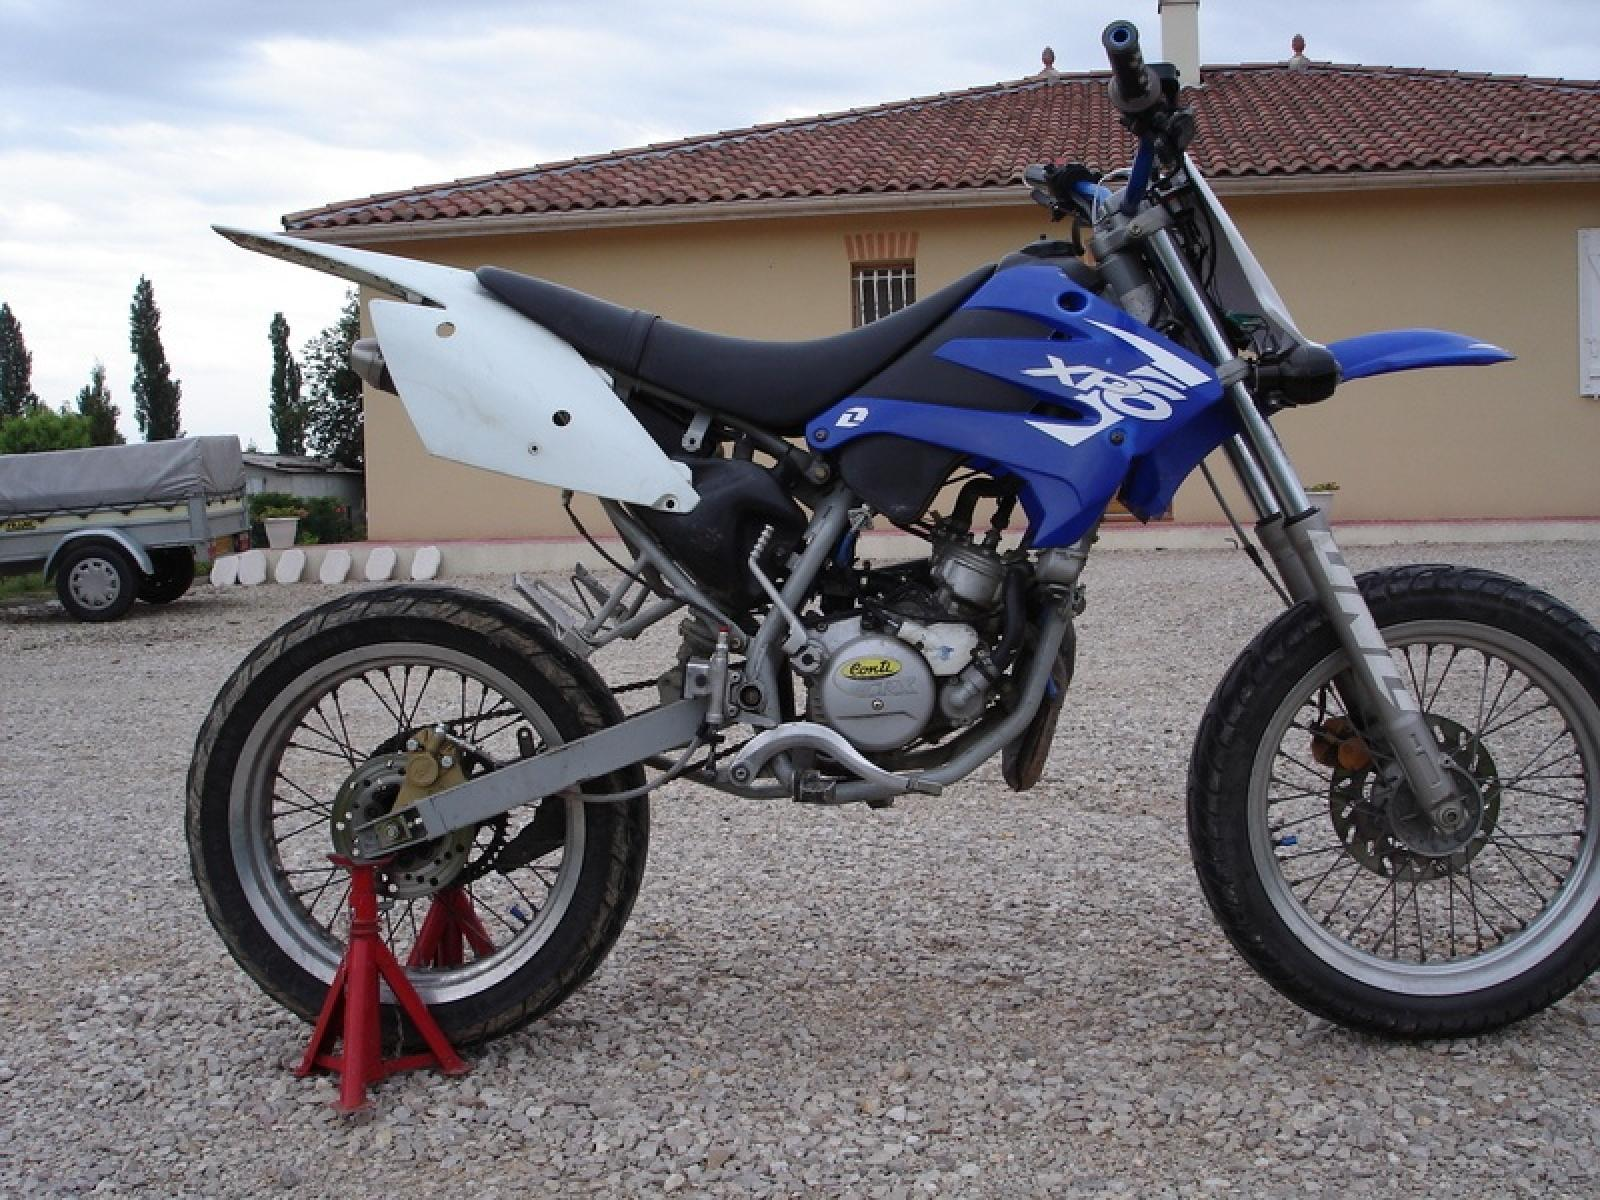 Peugeot XP6 50 Supermotard 2004 images #119604